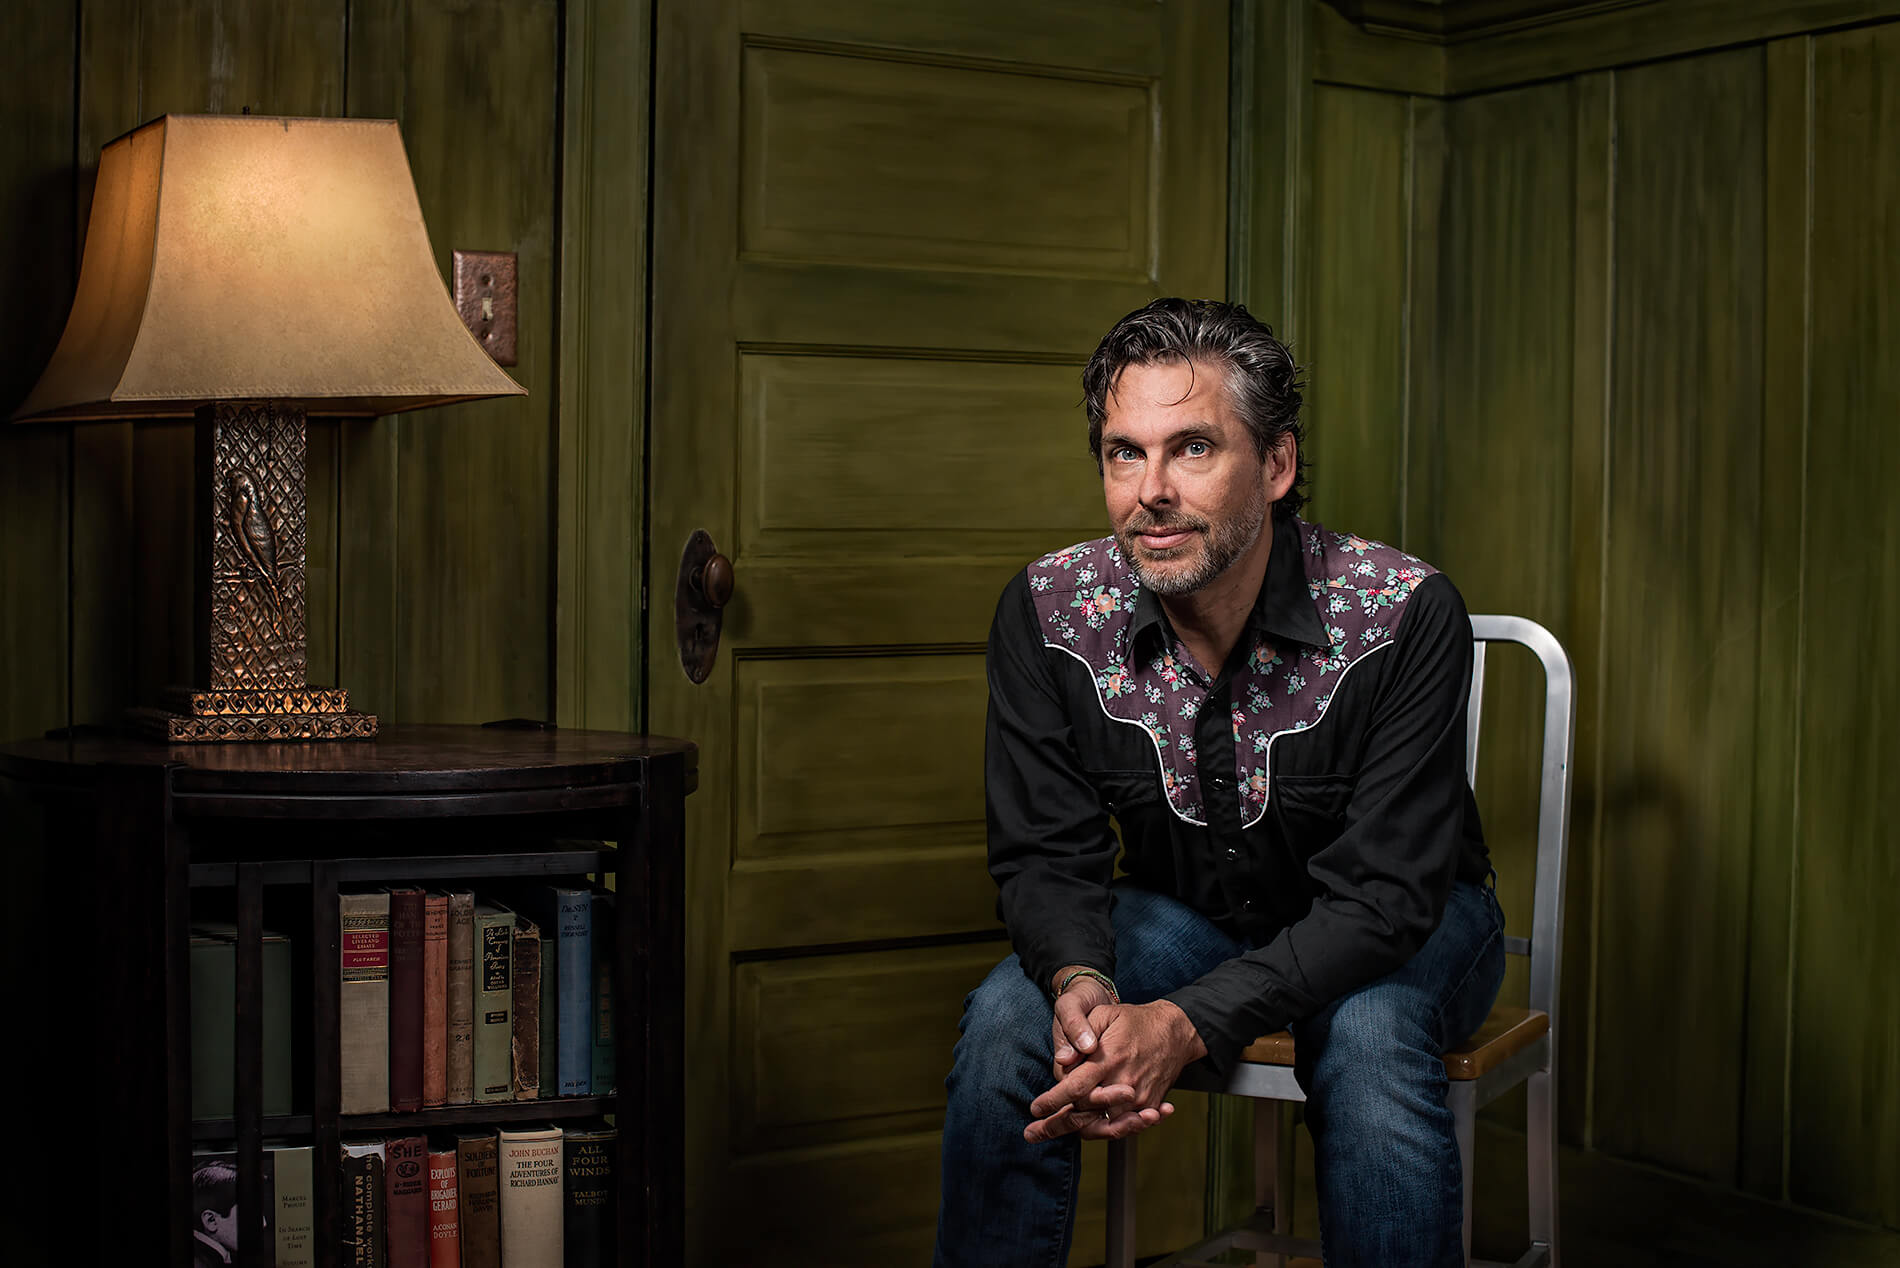 Author Michael Chabon at home